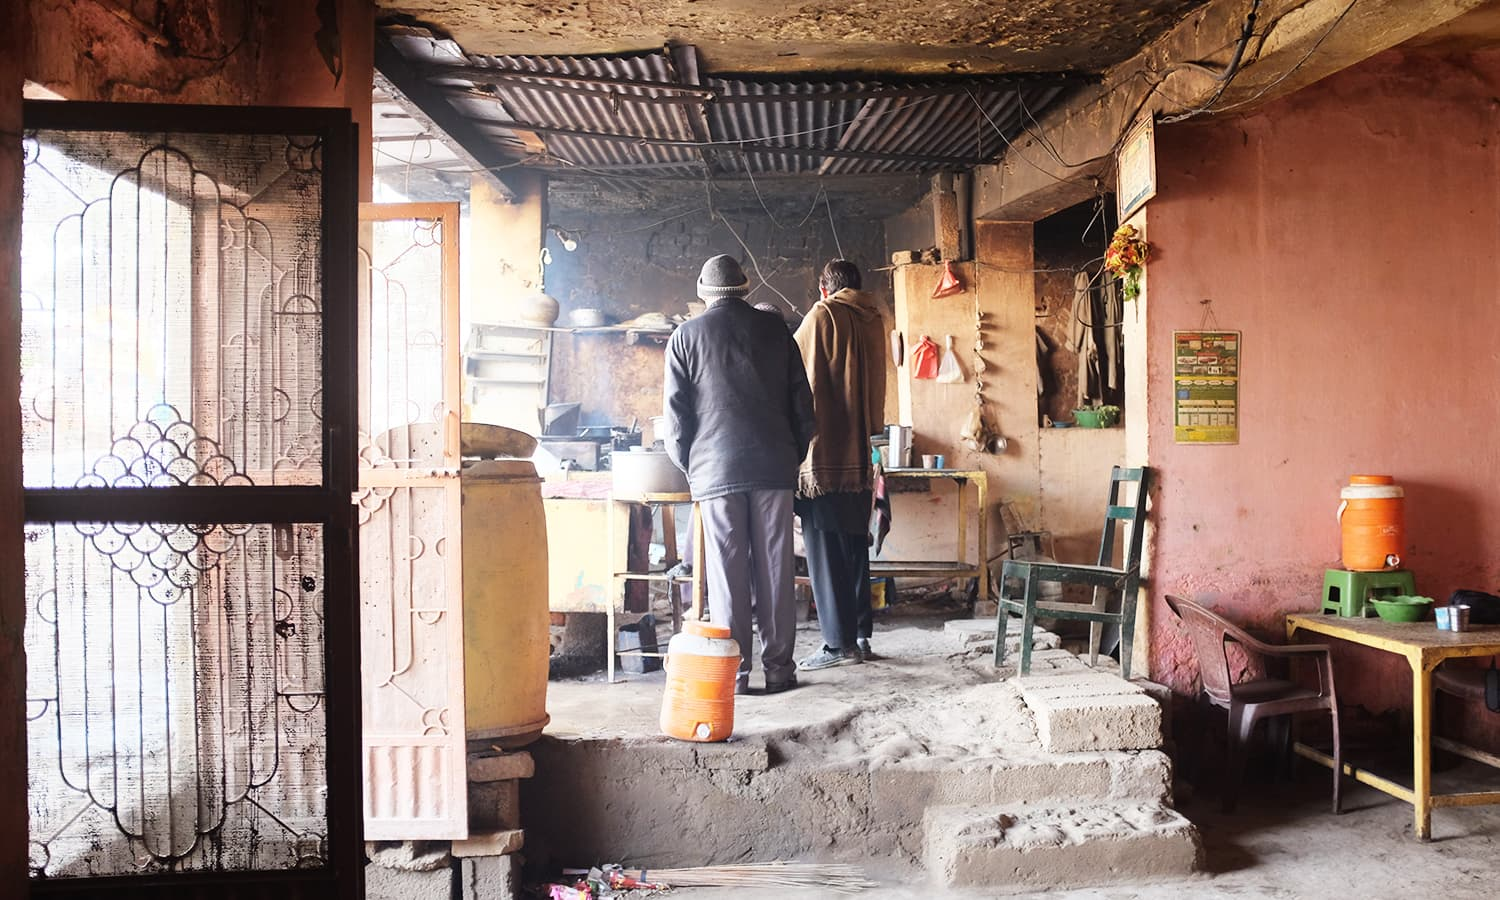 We stop at a rundown dhaba for breakfast.